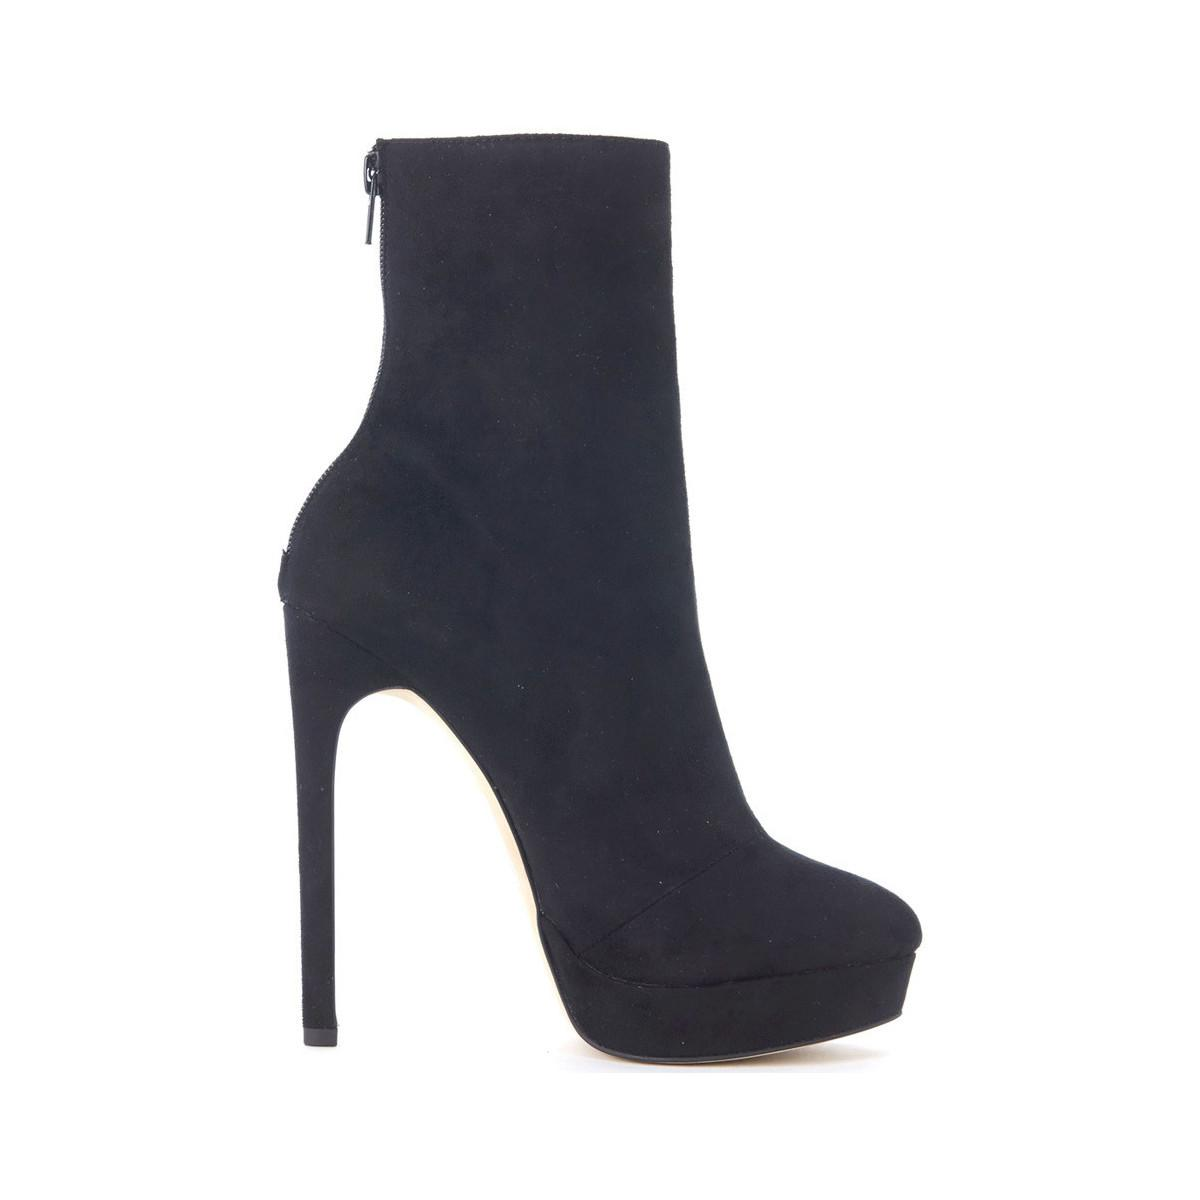 Steve Madden Black Suede Leather Ankle Boots Women's Court Shoes In Black